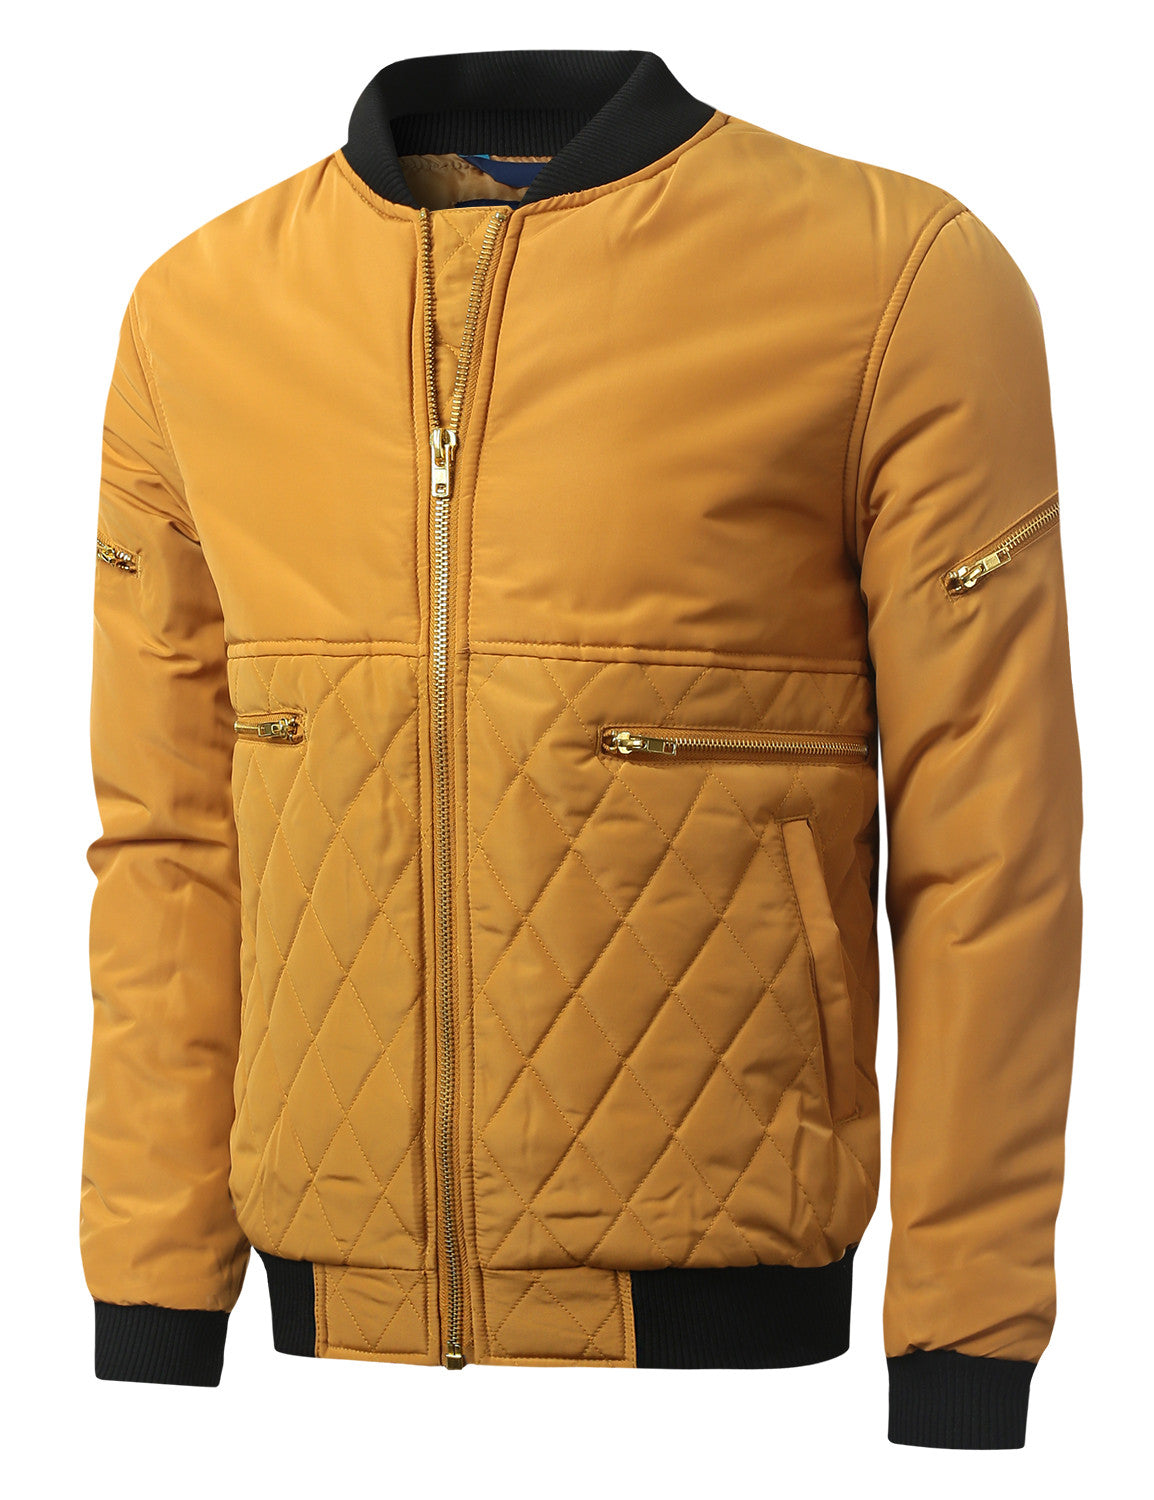 TIMBER Bomber Jacket with Quilted Trim - URBANCREWS